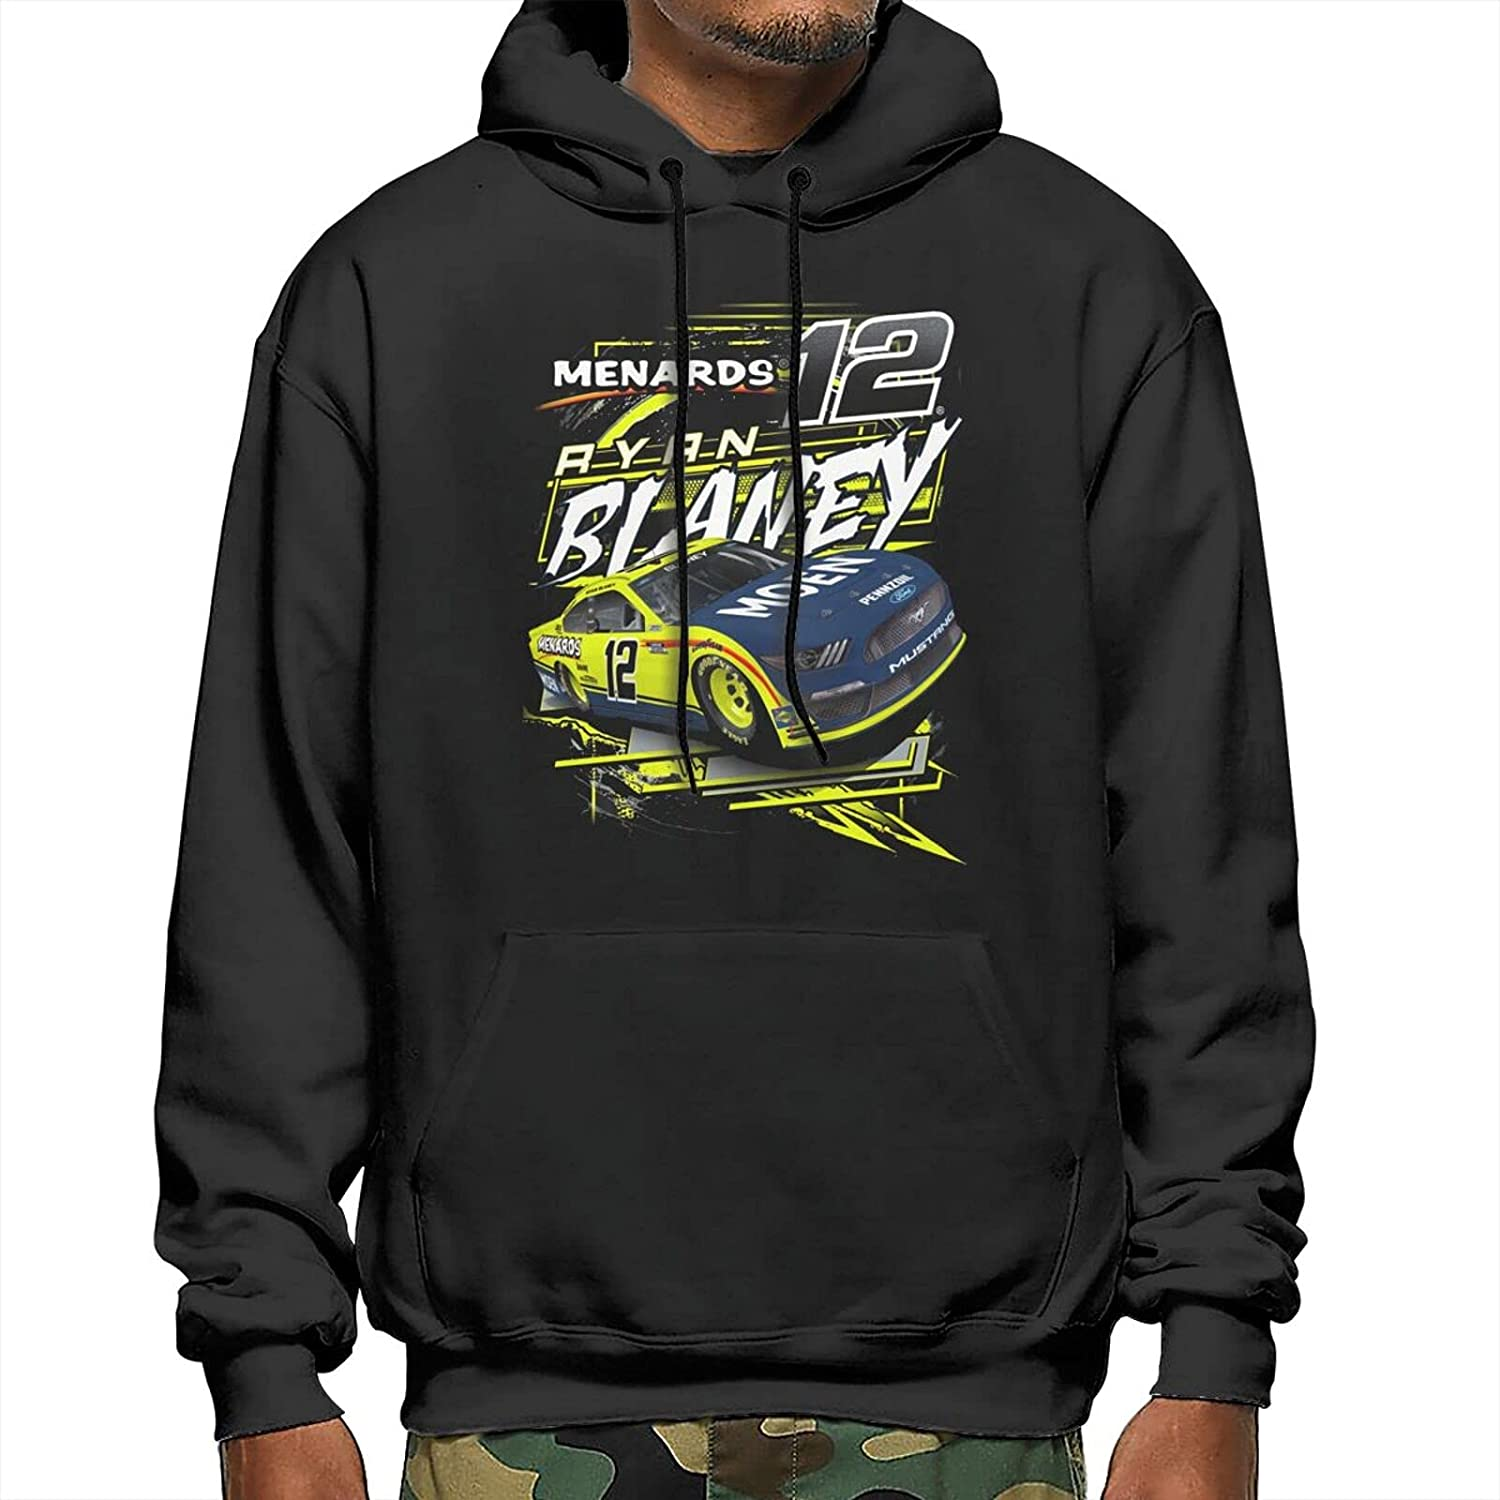 GAiNViEW Free shipping on posting reviews Ryan Blaney 2021 Men's Beauty products Loose Pullover Sweatshirt Hoodie